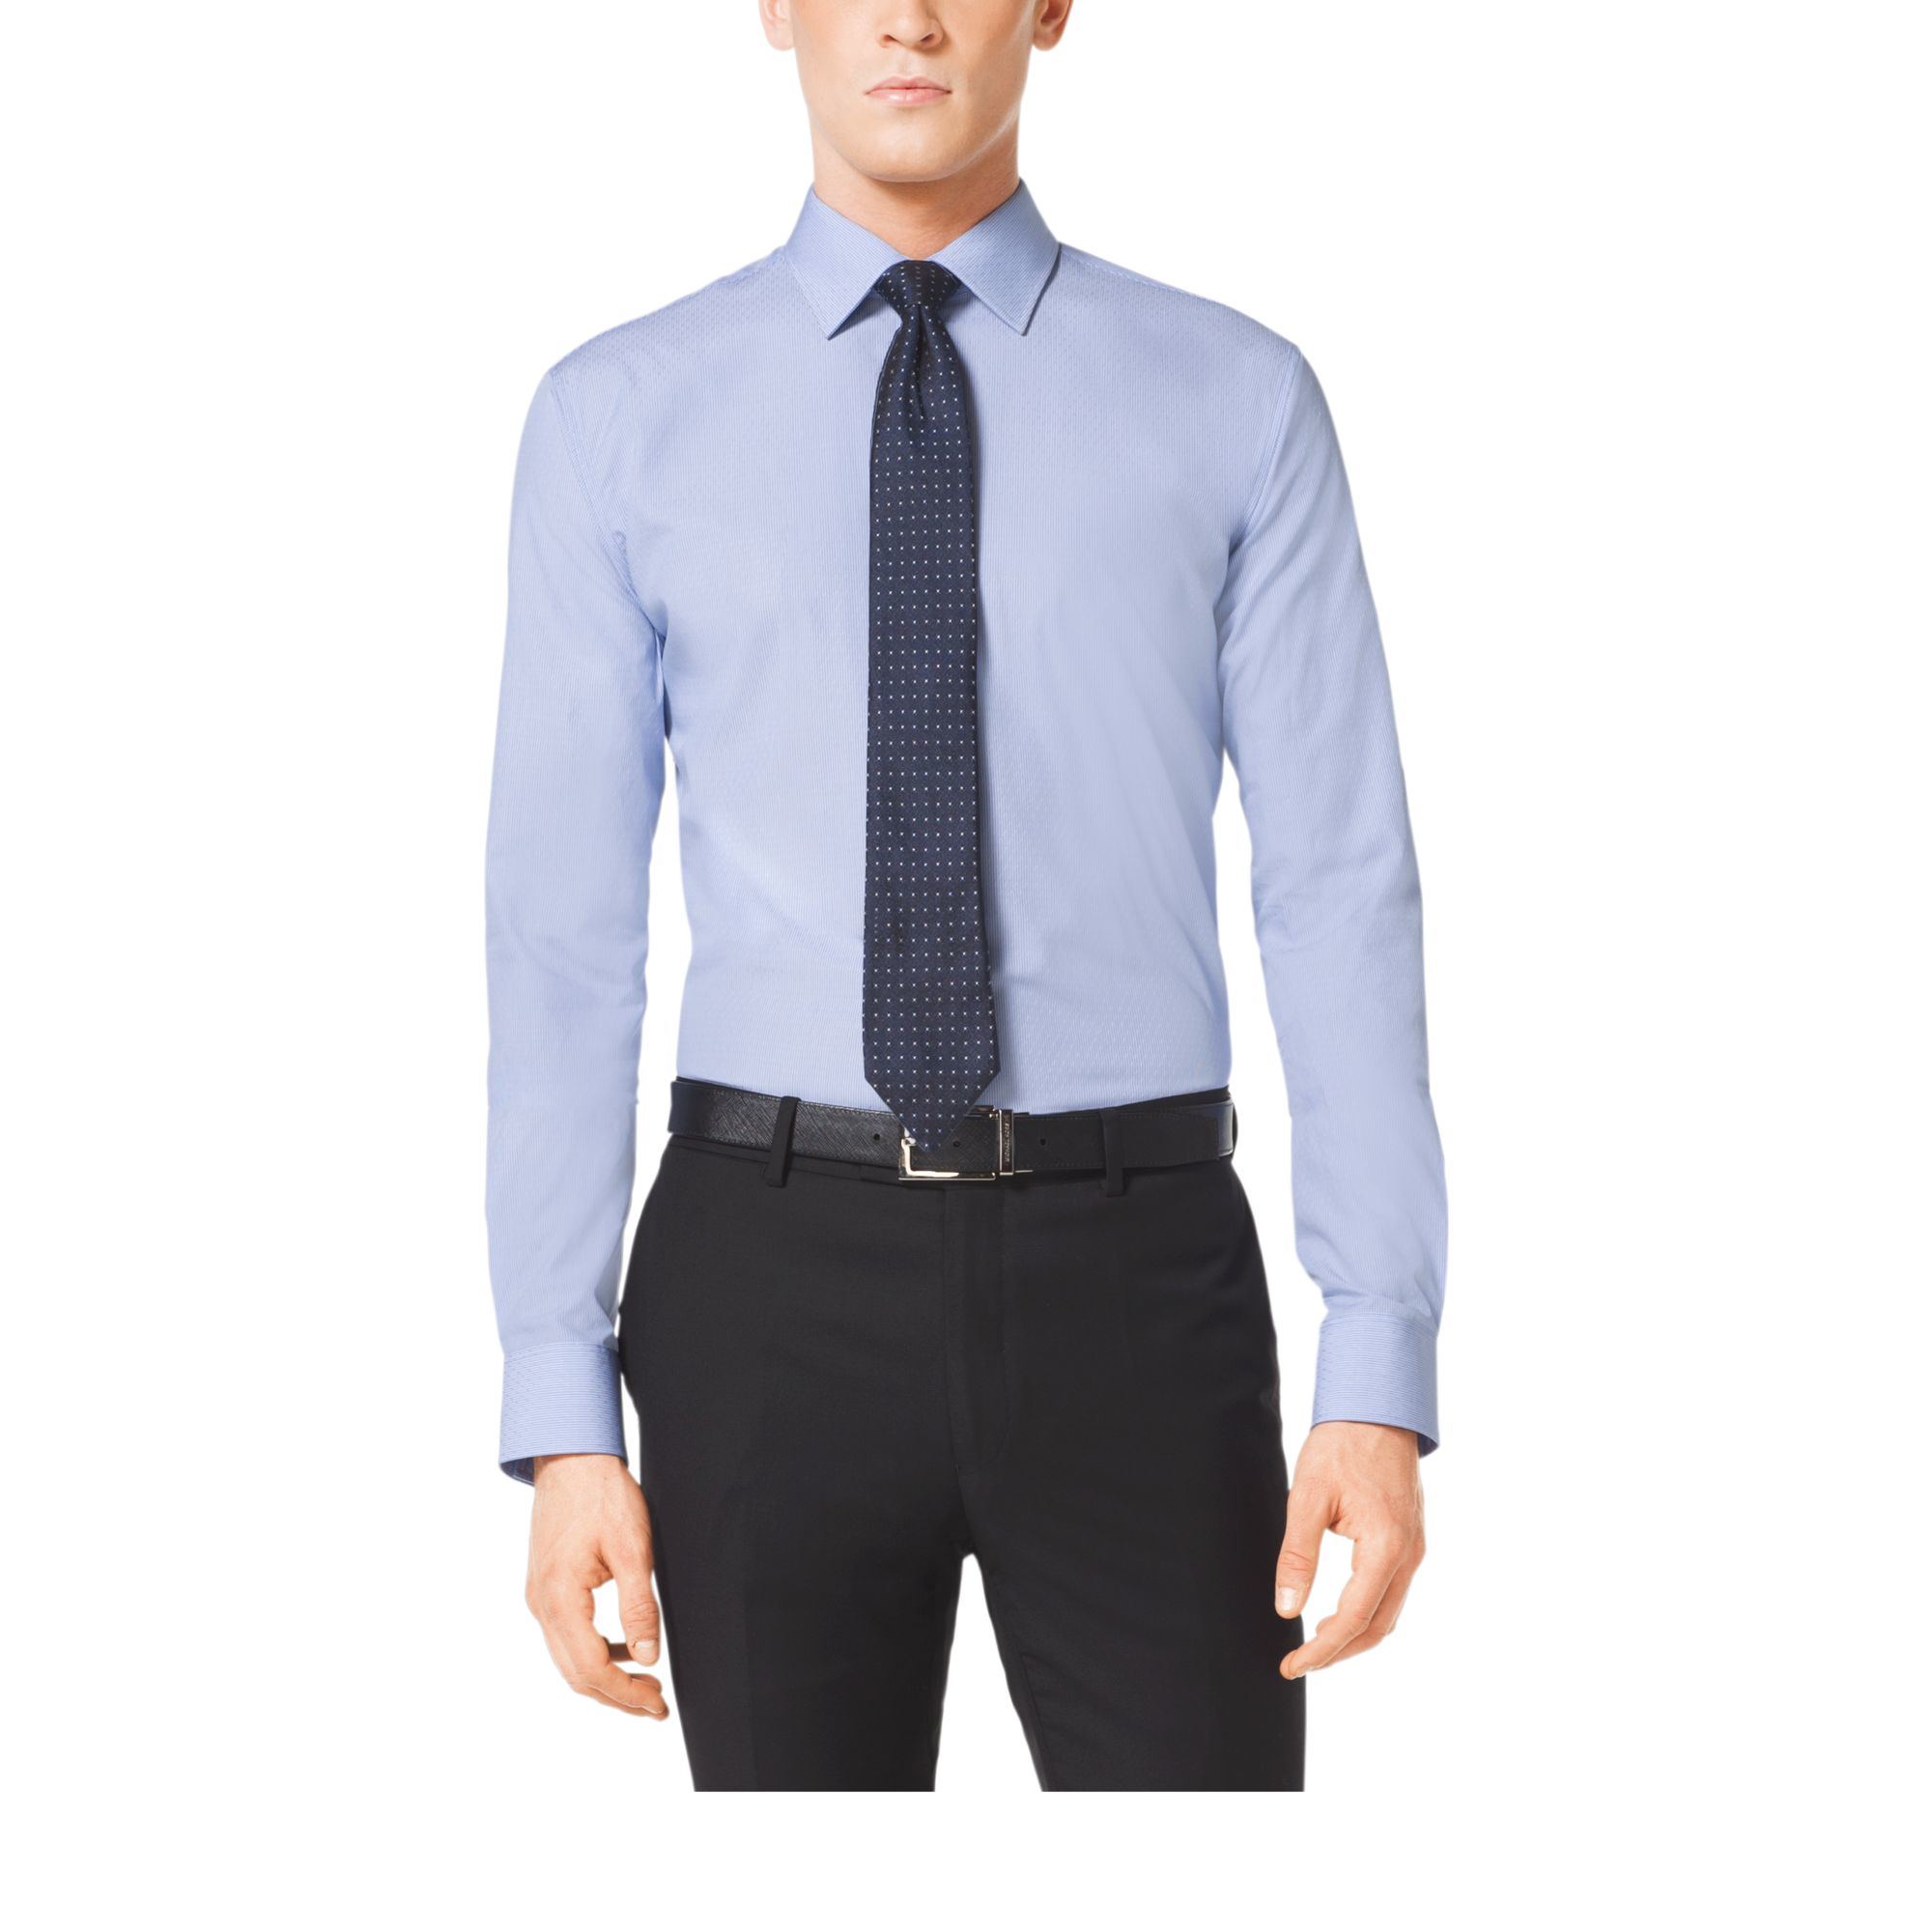 michael kors cotton dress shirt in blue for men lyst. Black Bedroom Furniture Sets. Home Design Ideas